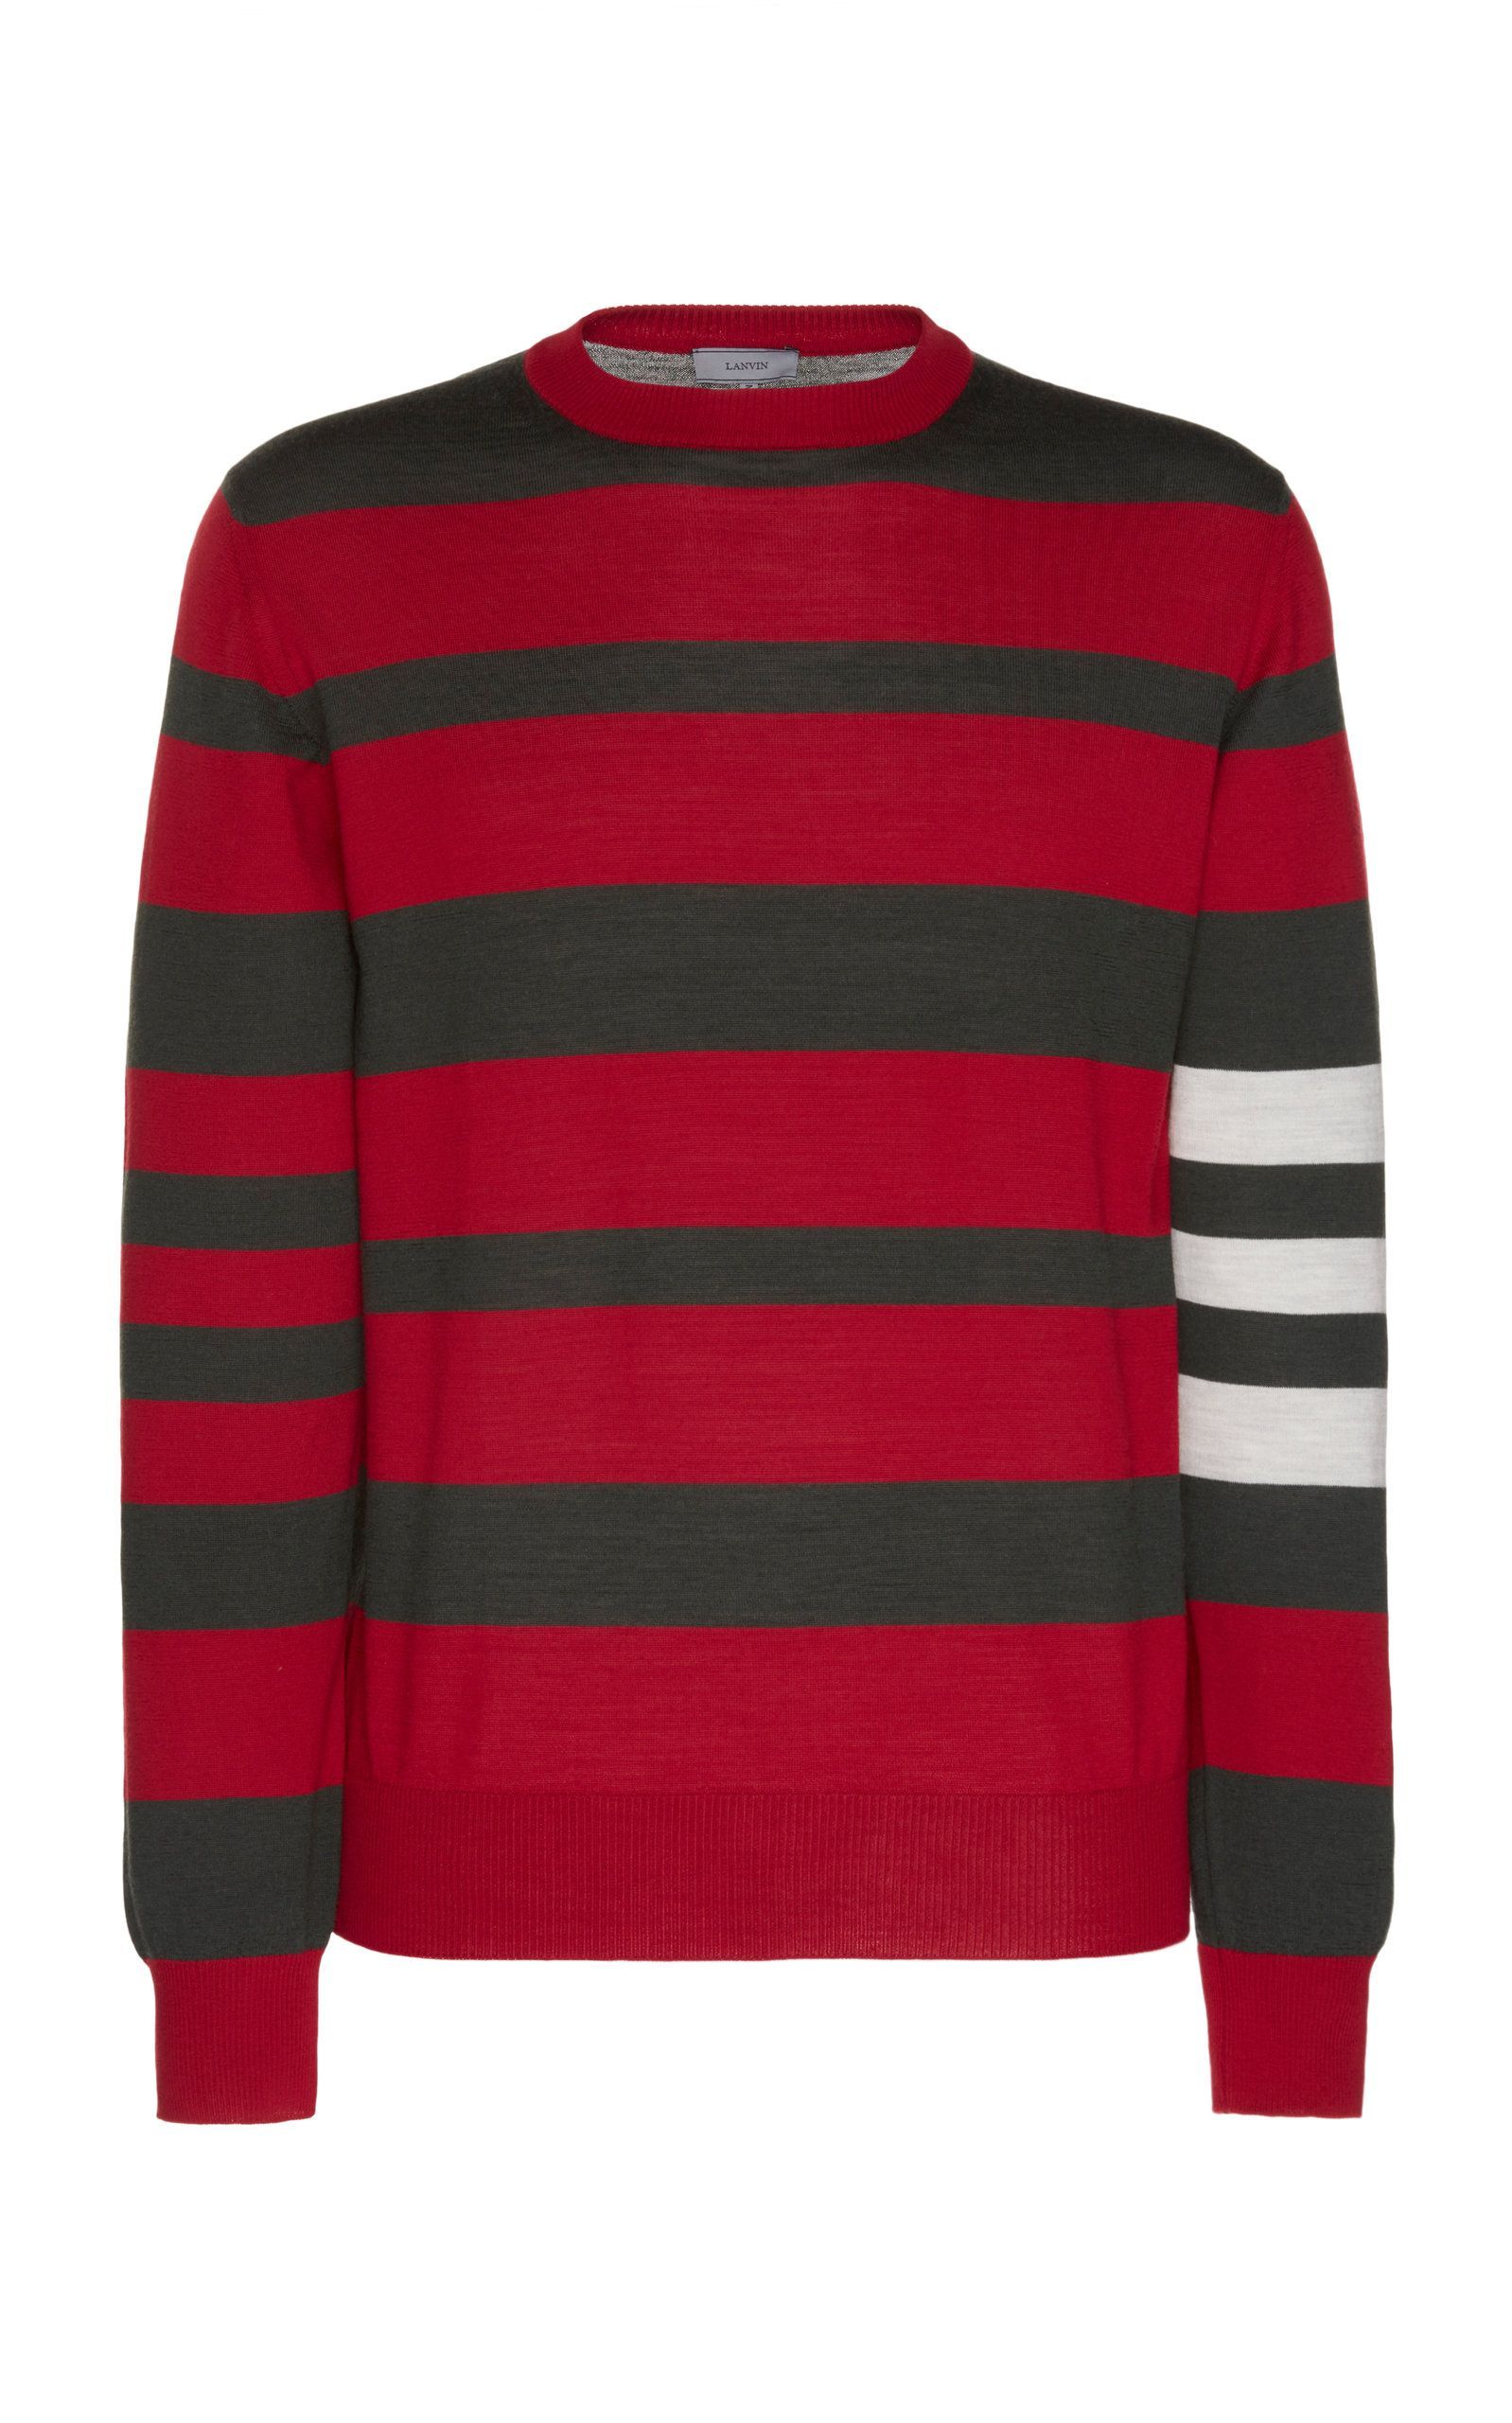 Mens New Neck Casual Knitwear Knitted Striped Crew Pullover Sweater Jumper Top